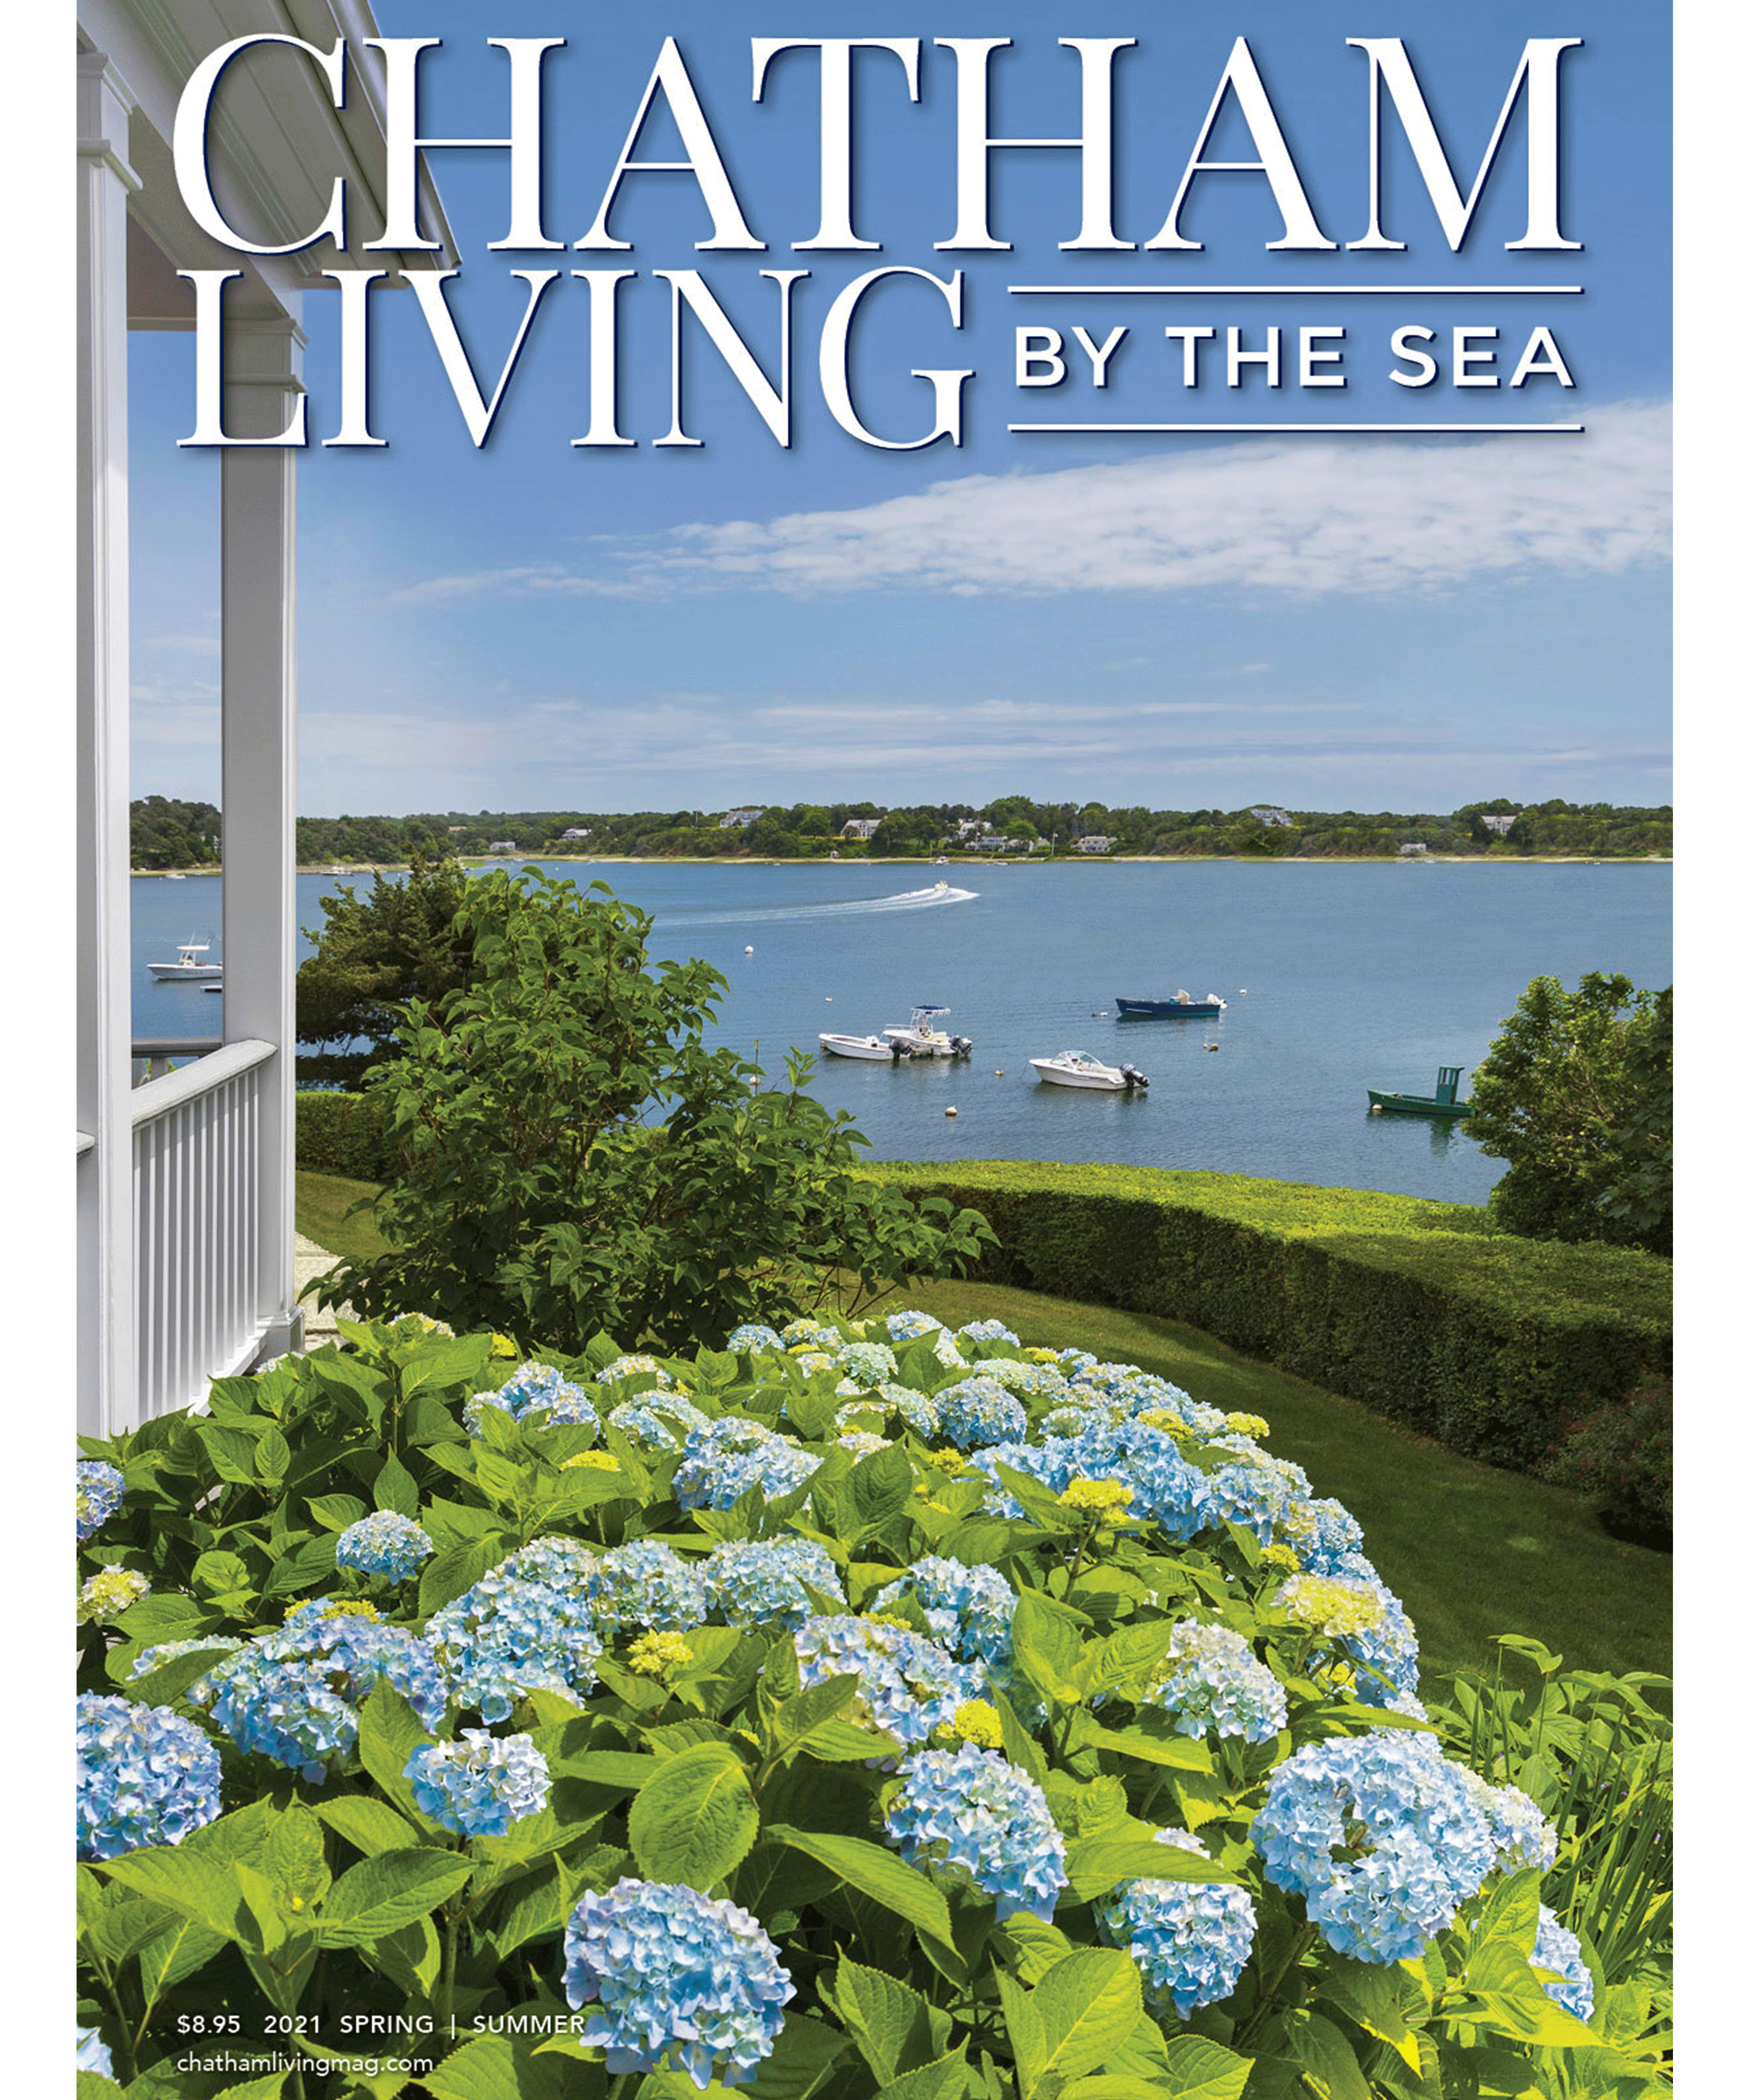 Chatham Living by the Sea Spring Summer Cover 2021